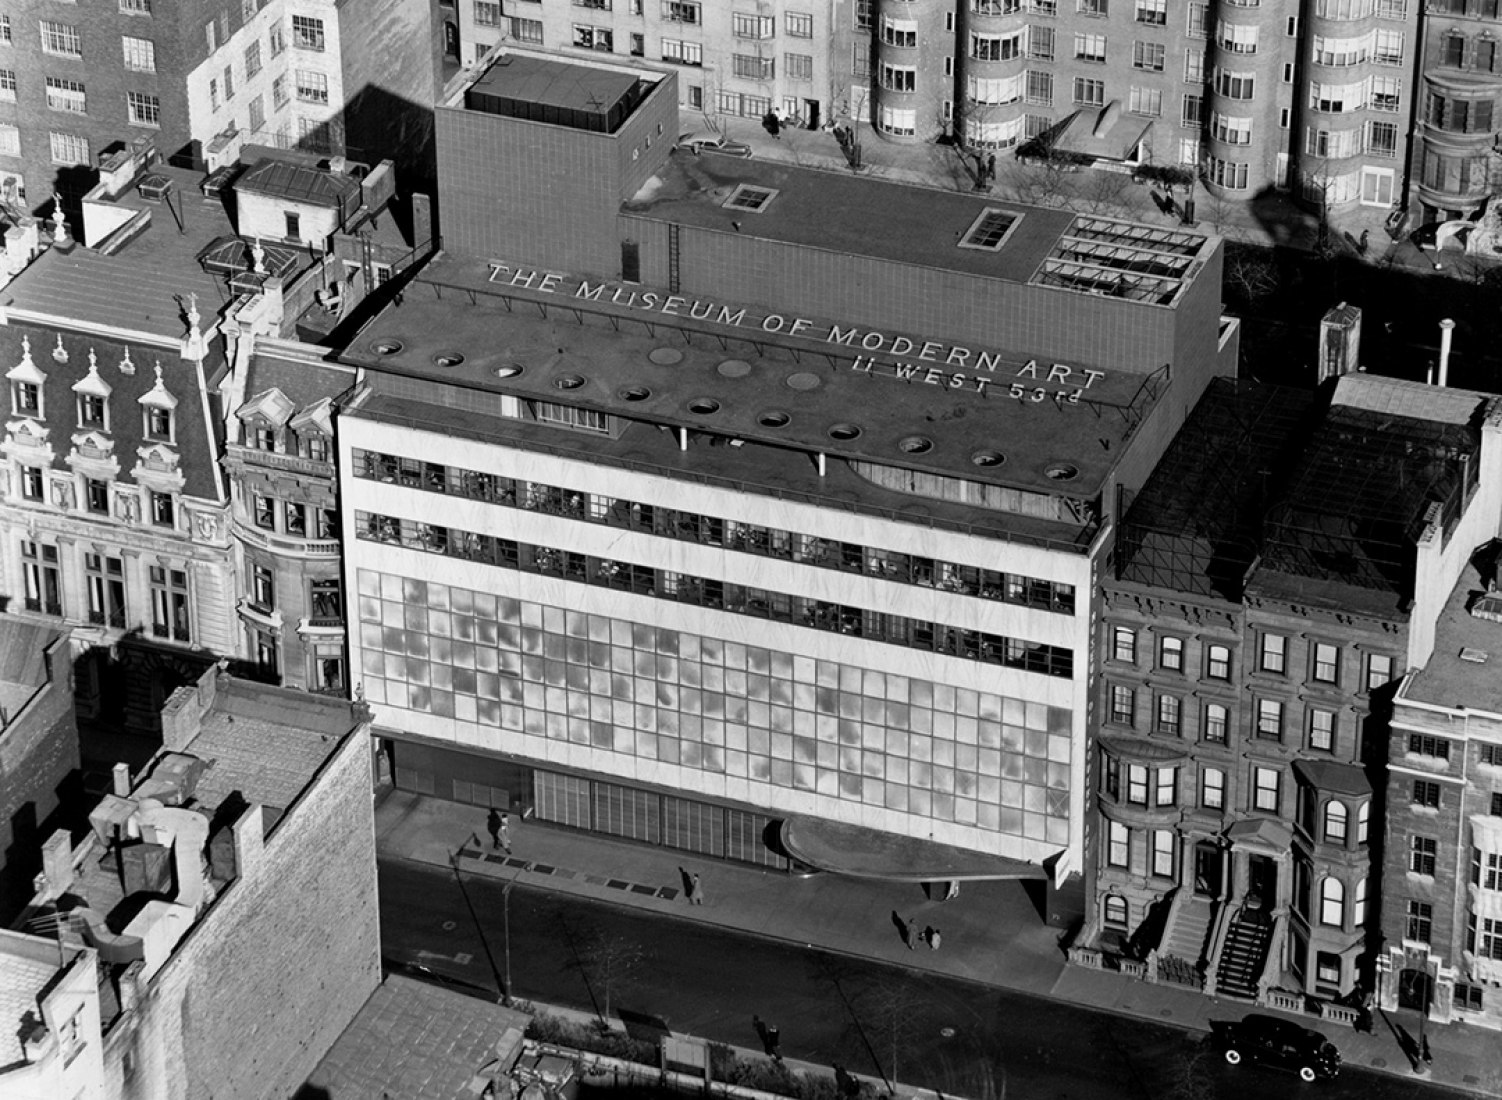 Buildings around the Museum of Modern Art, shown in 1939, have fallen to accommodate expansion, changing the scale of West 53rd Street. Andreas Feininger/Museum of Modern Art.